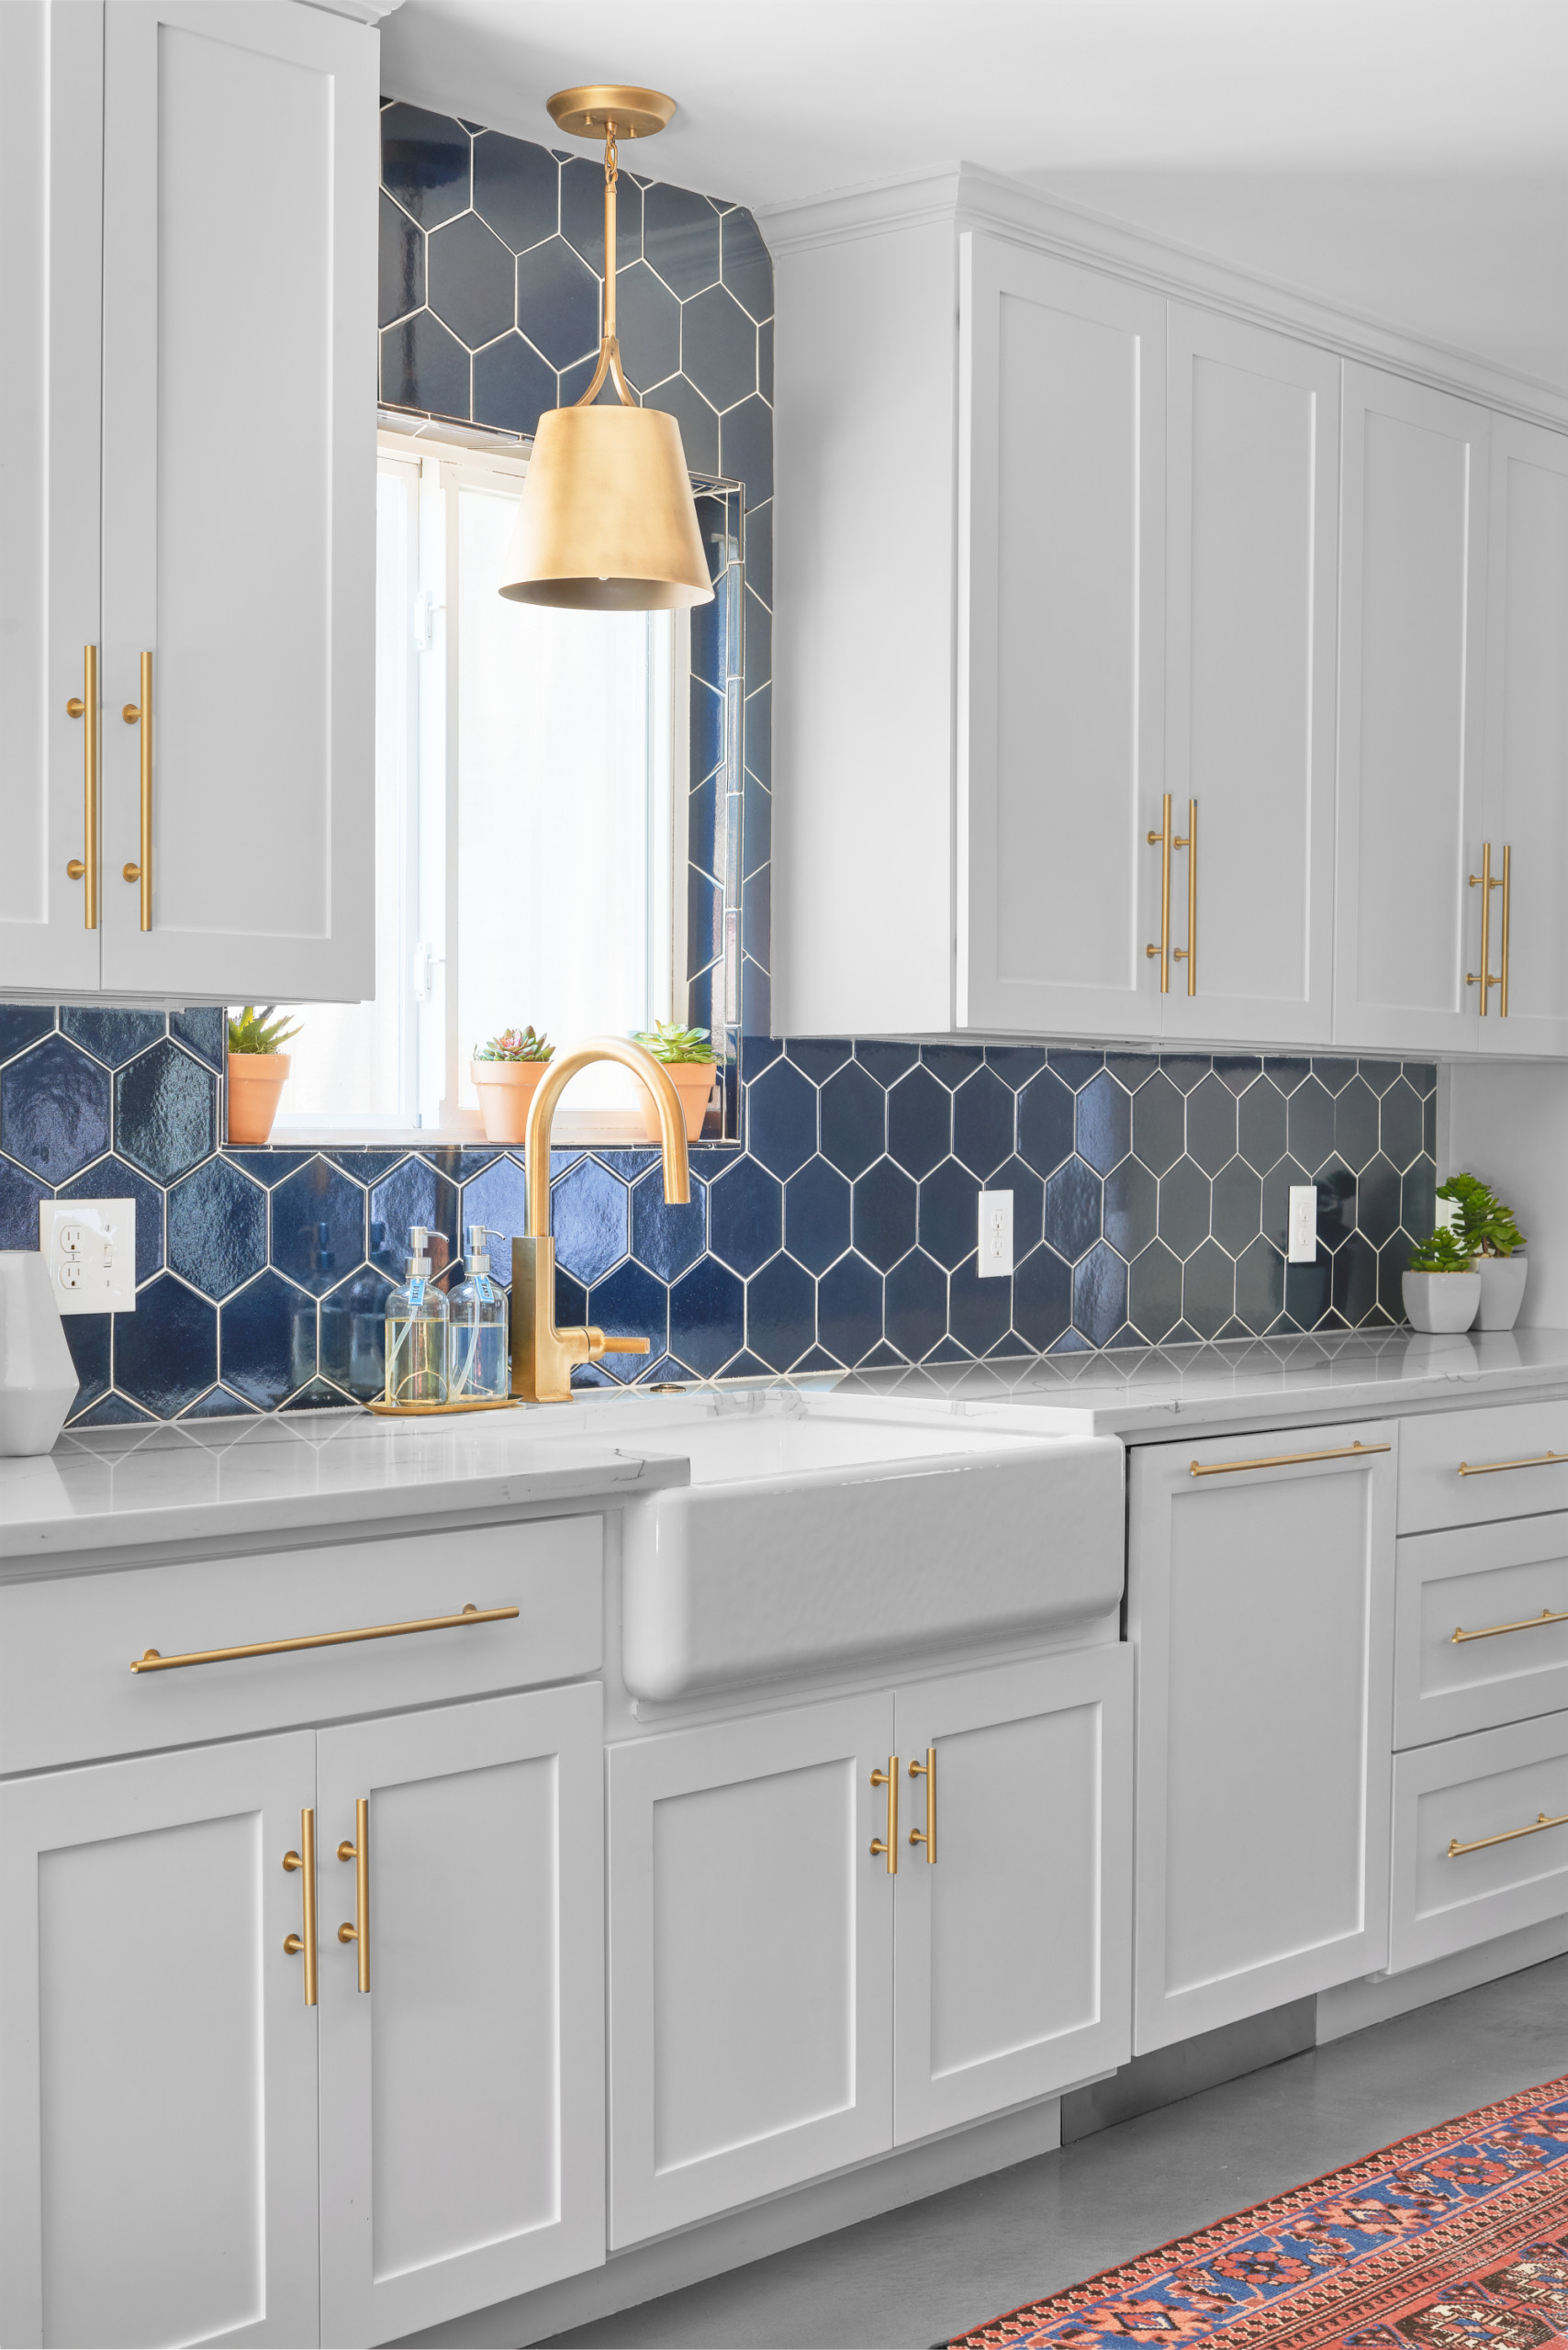 75 Beautiful Kitchen With Blue Backsplash Pictures Ideas November 2020 Houzz